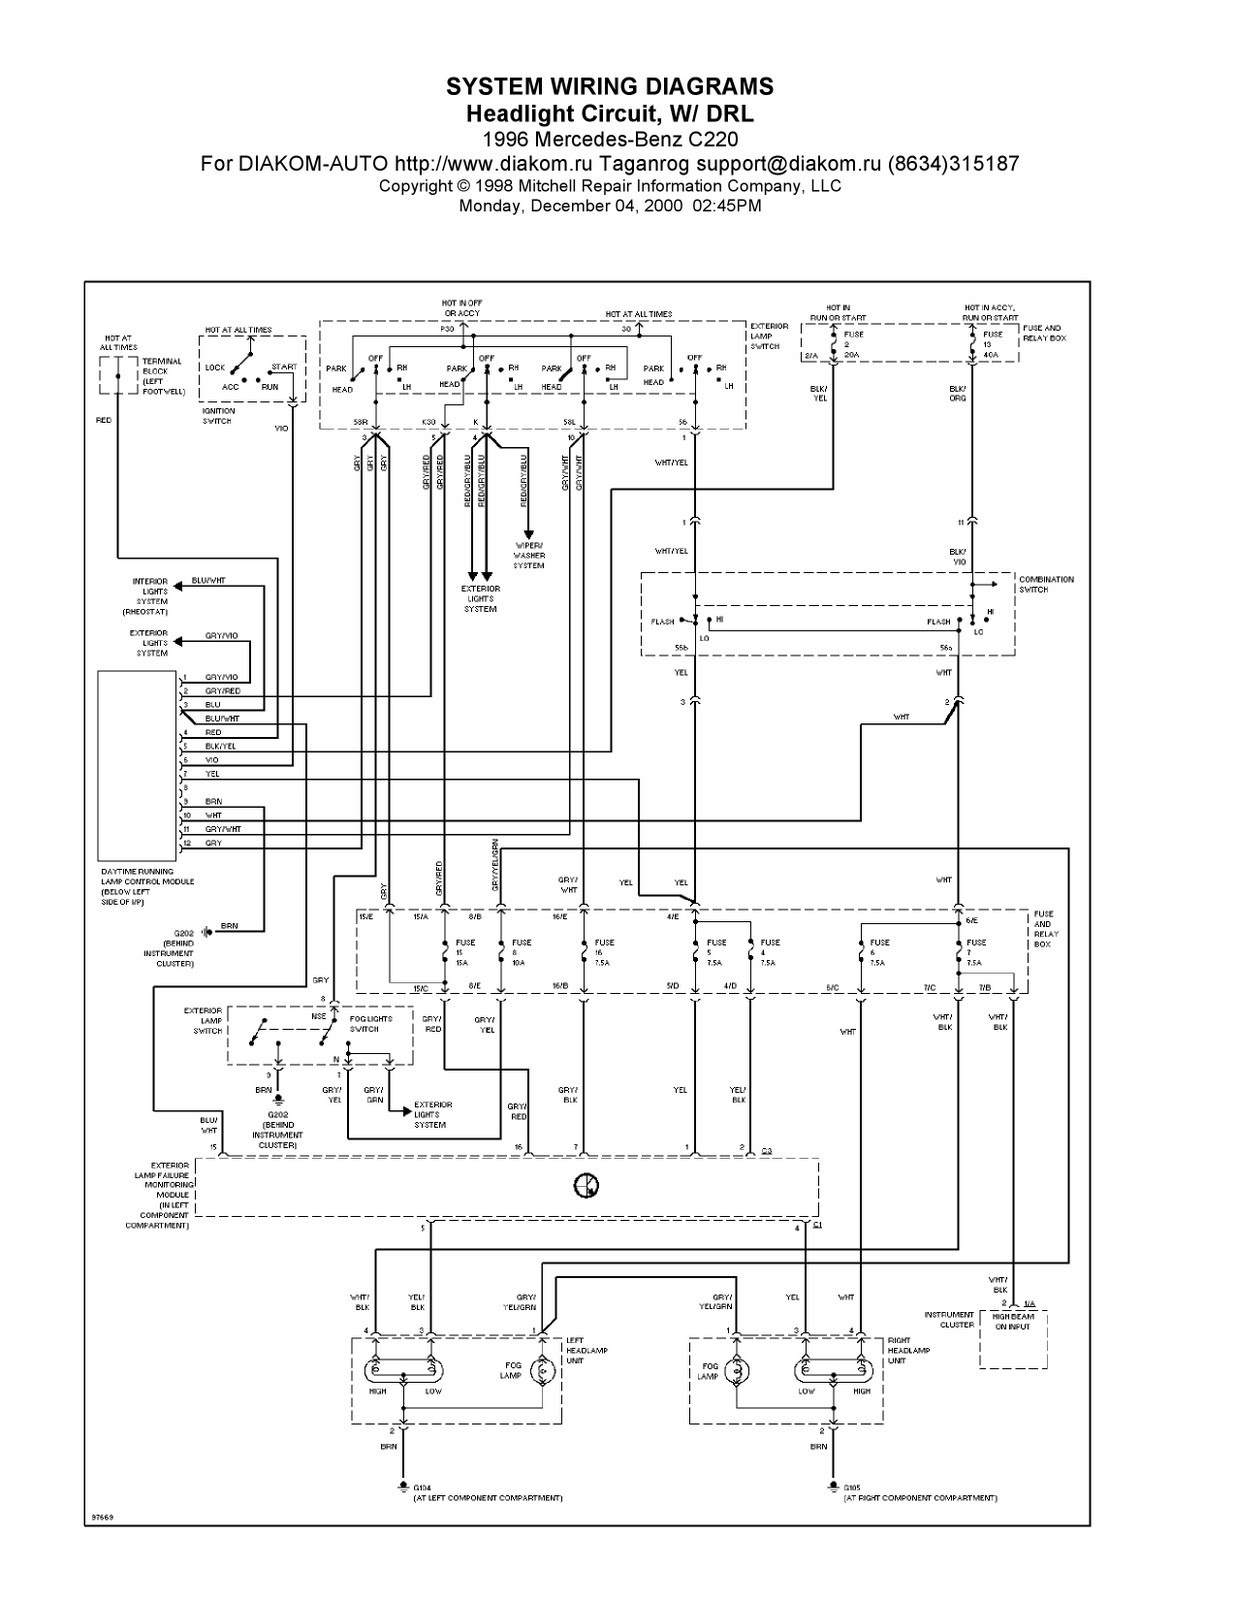 w124 air conditioner wiring diagram wiring diagrammercedes benz w209 wiring diagram free image wiring diagram enginemercedes [ 1236 x 1600 Pixel ]